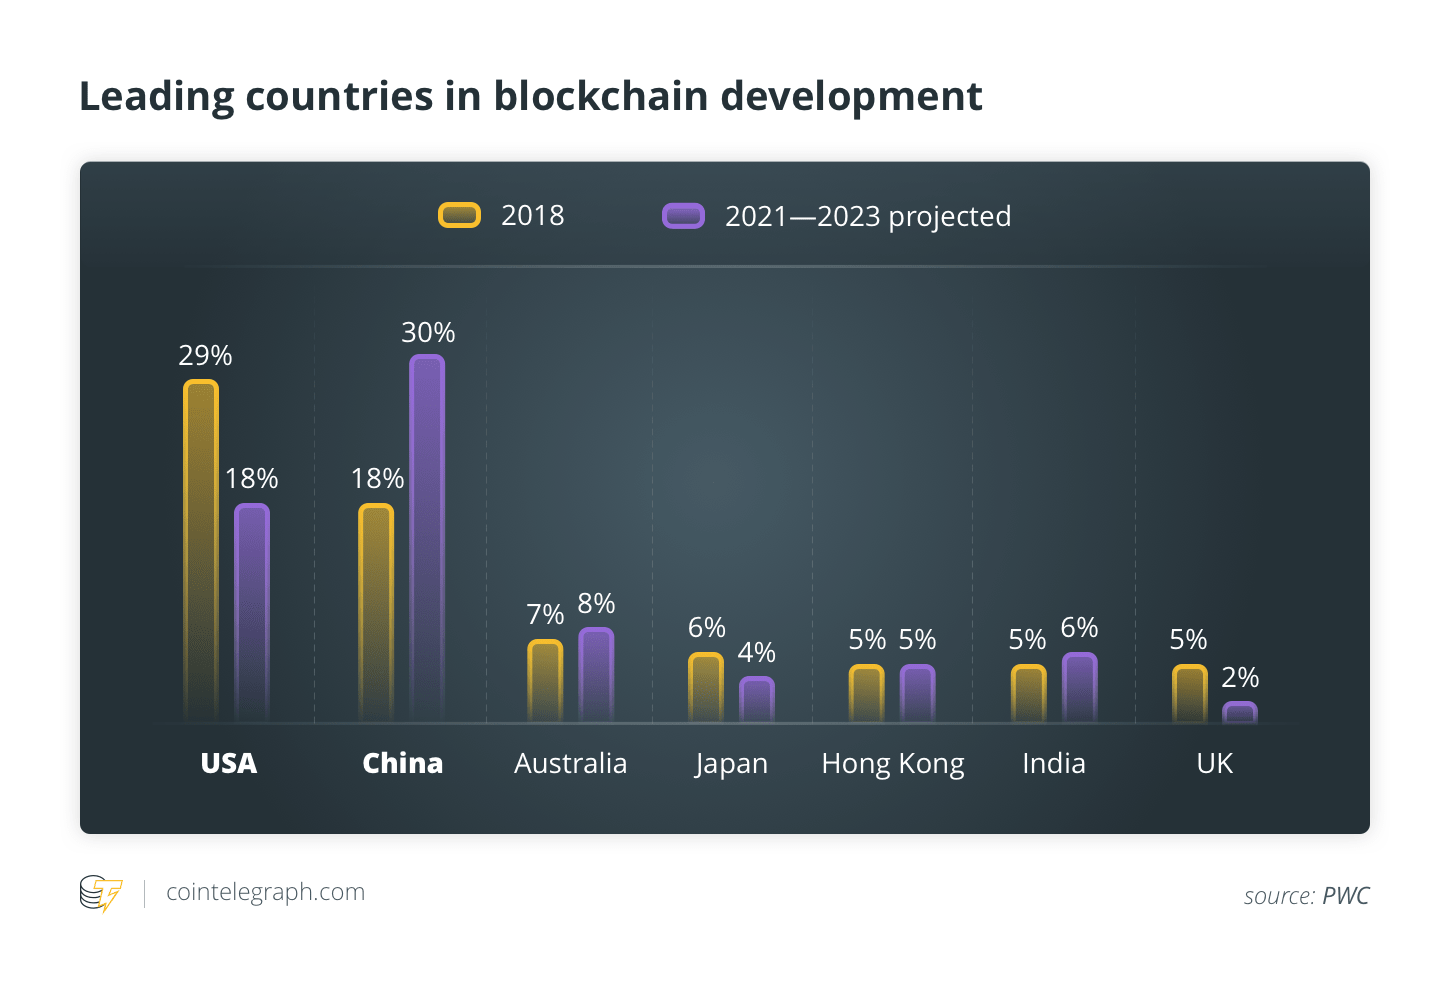 Leading countries in blockchain development